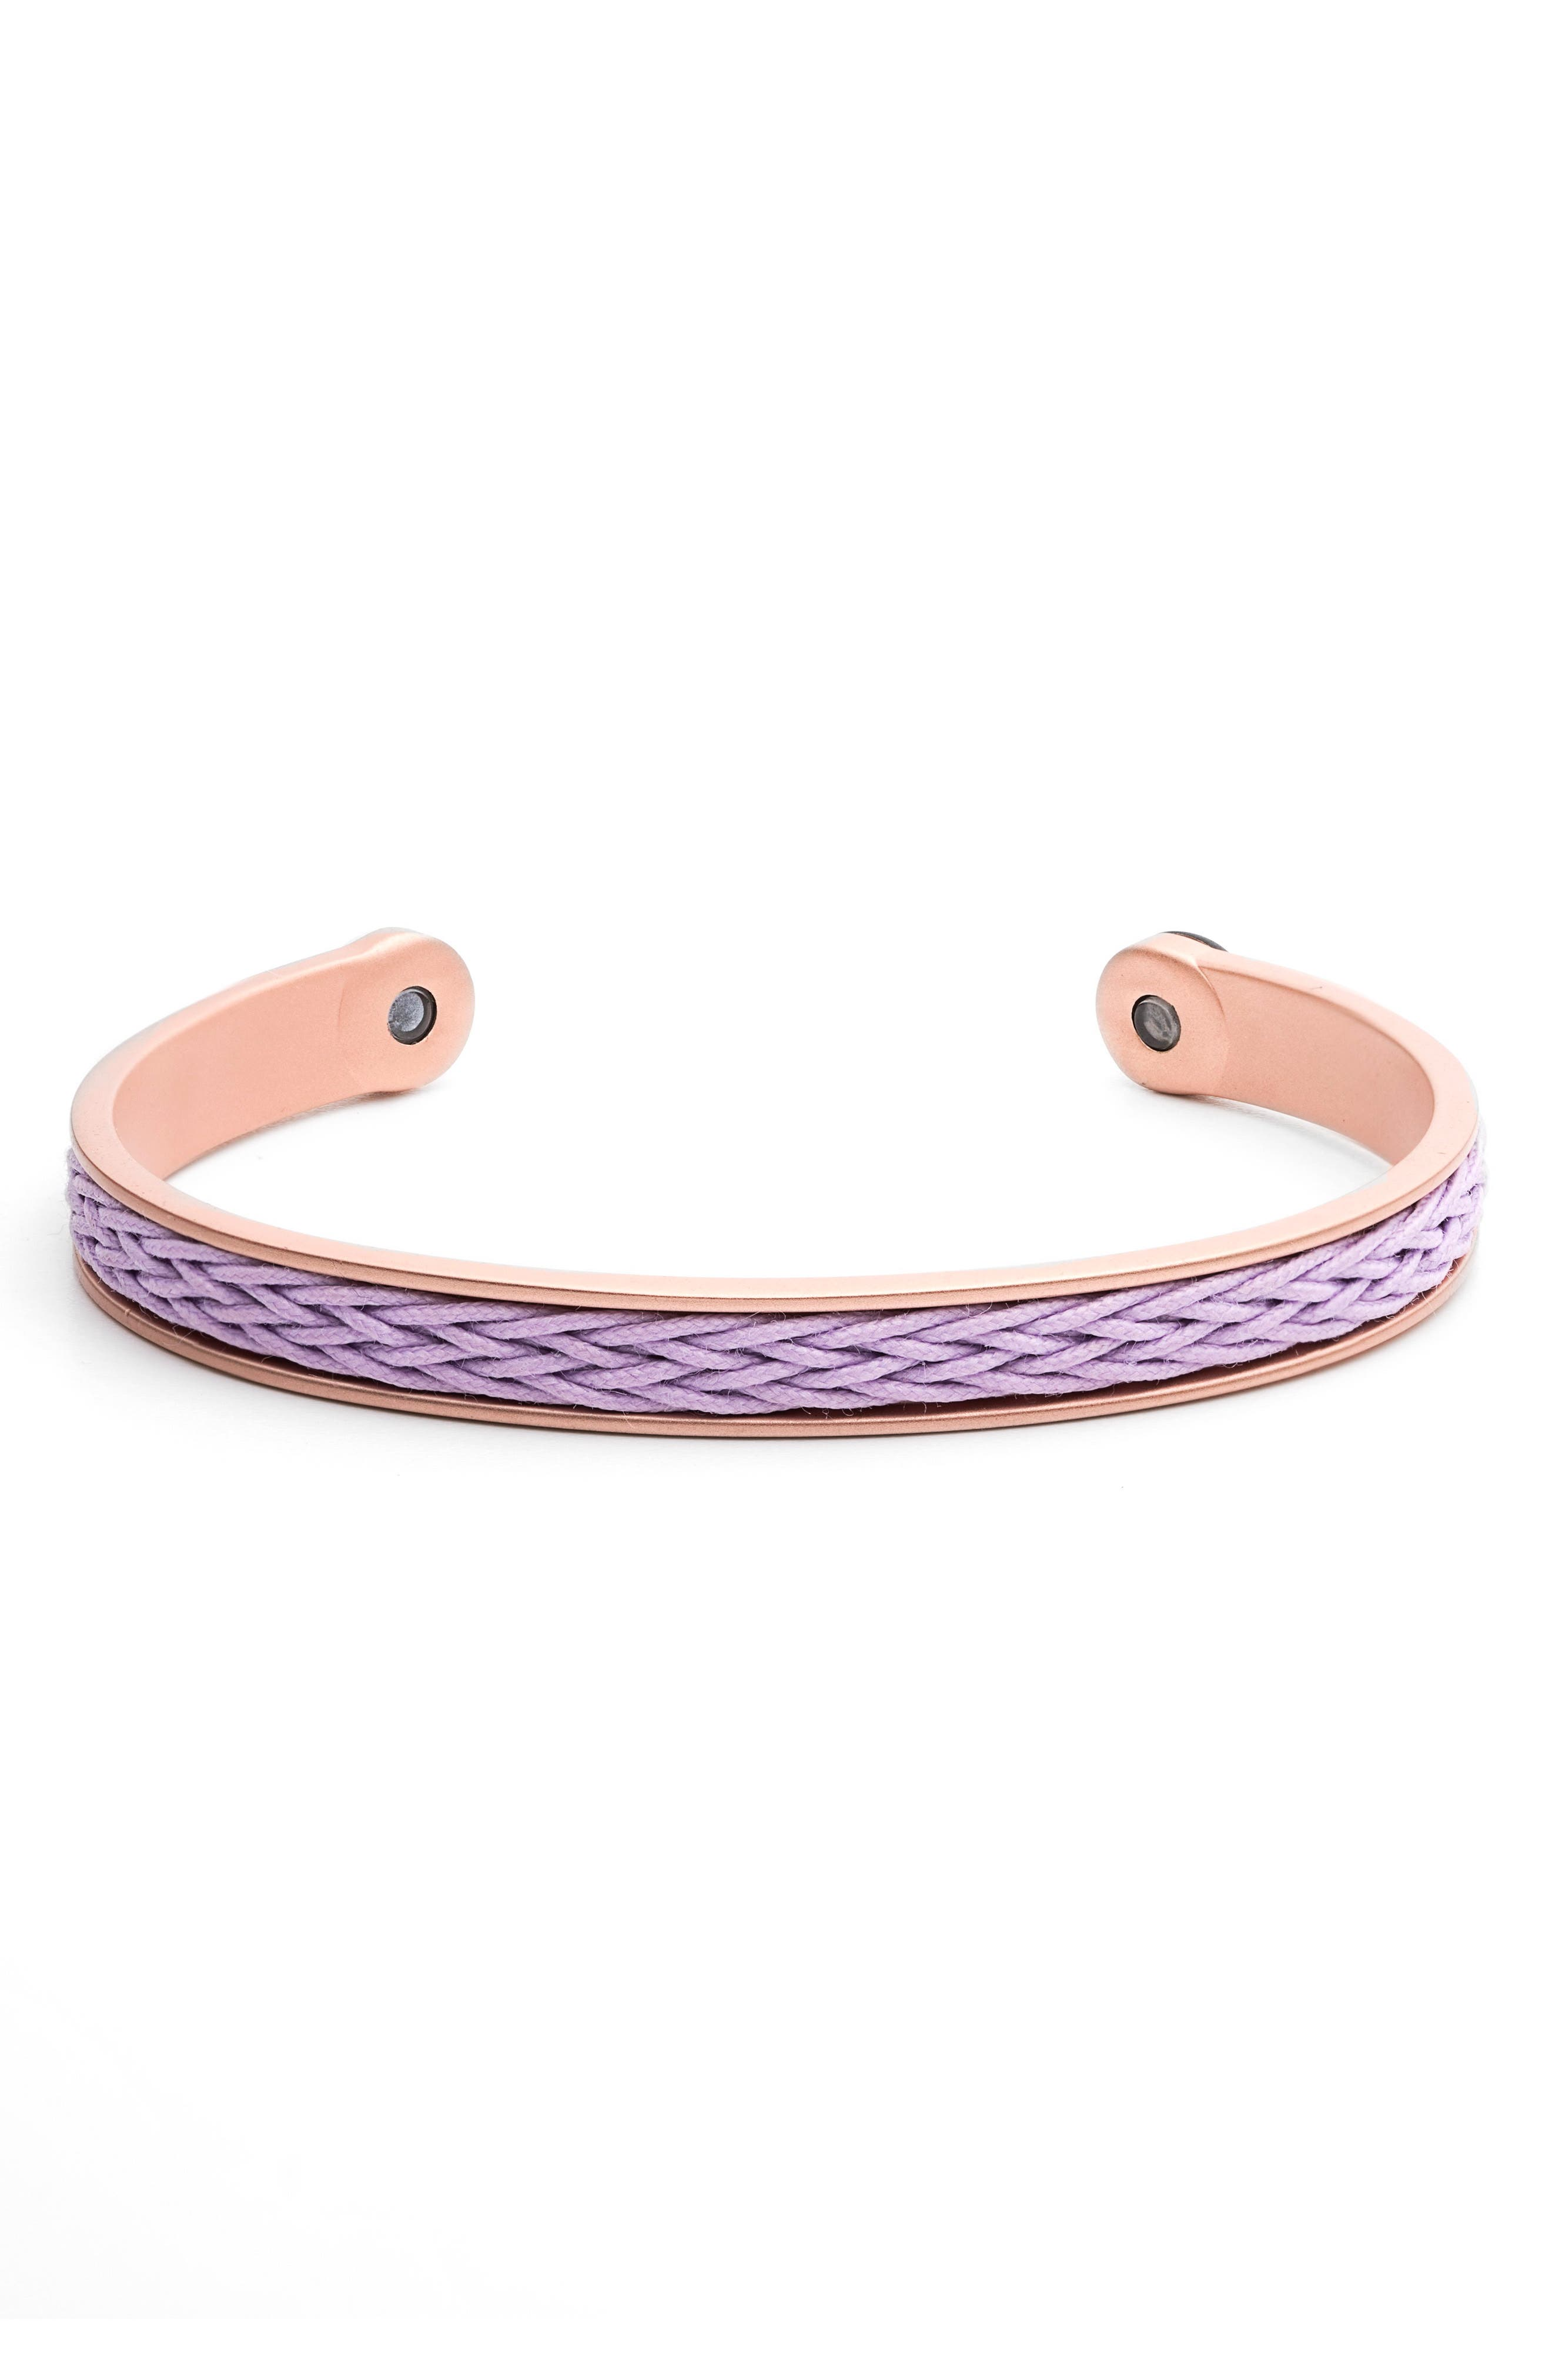 Braided Cuff Bracelet,                             Main thumbnail 1, color,                             Rose Gold/ Lilac